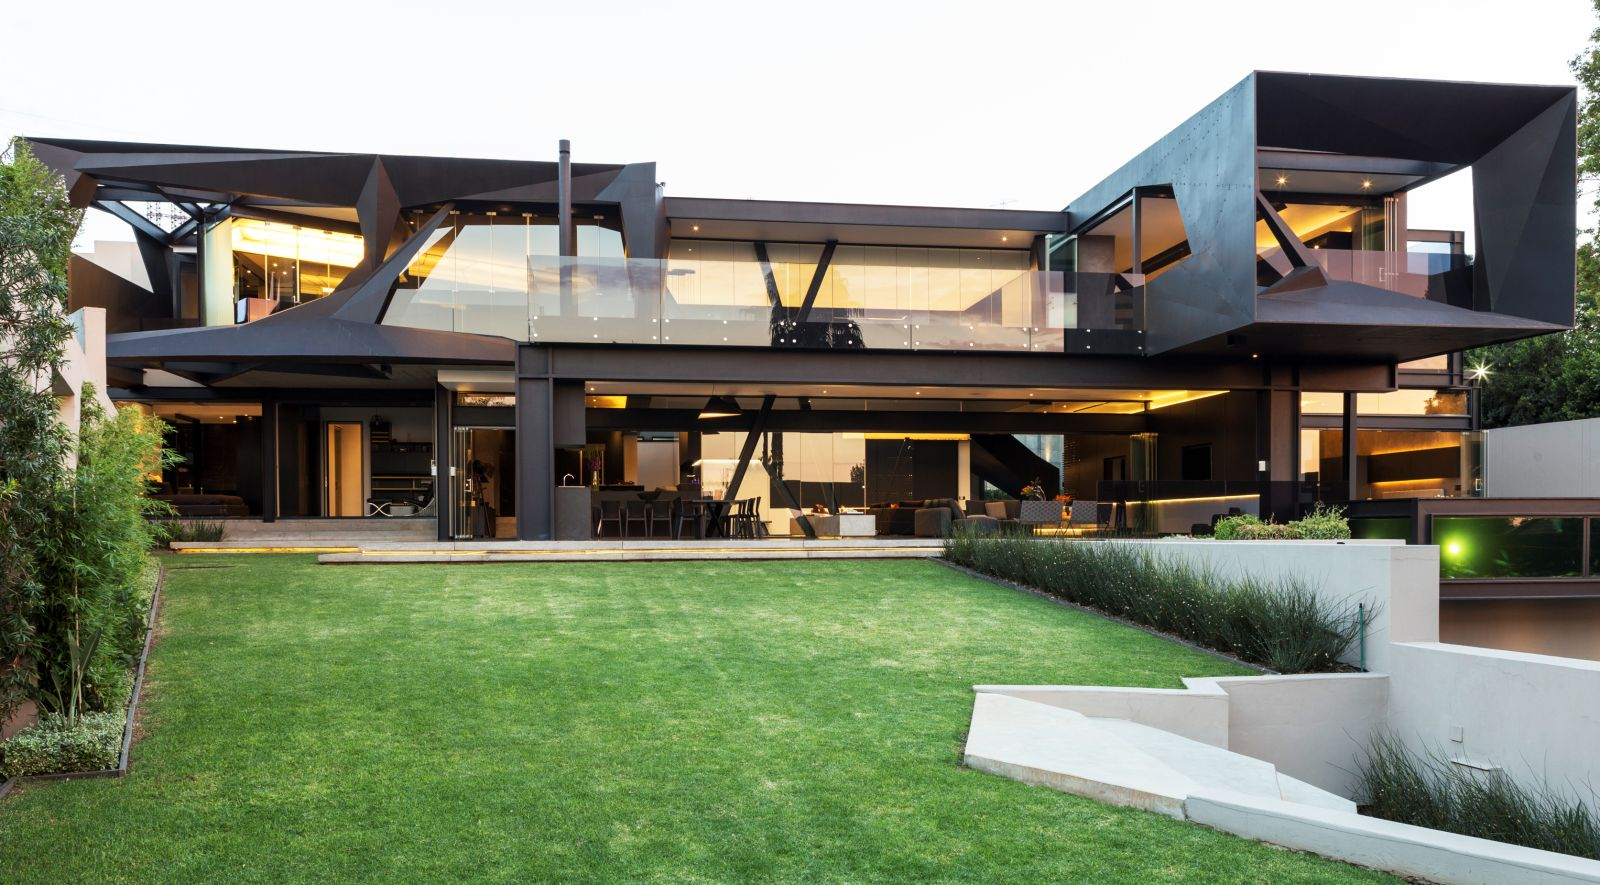 Kloof road house by nico van der meulen architects for In house architect